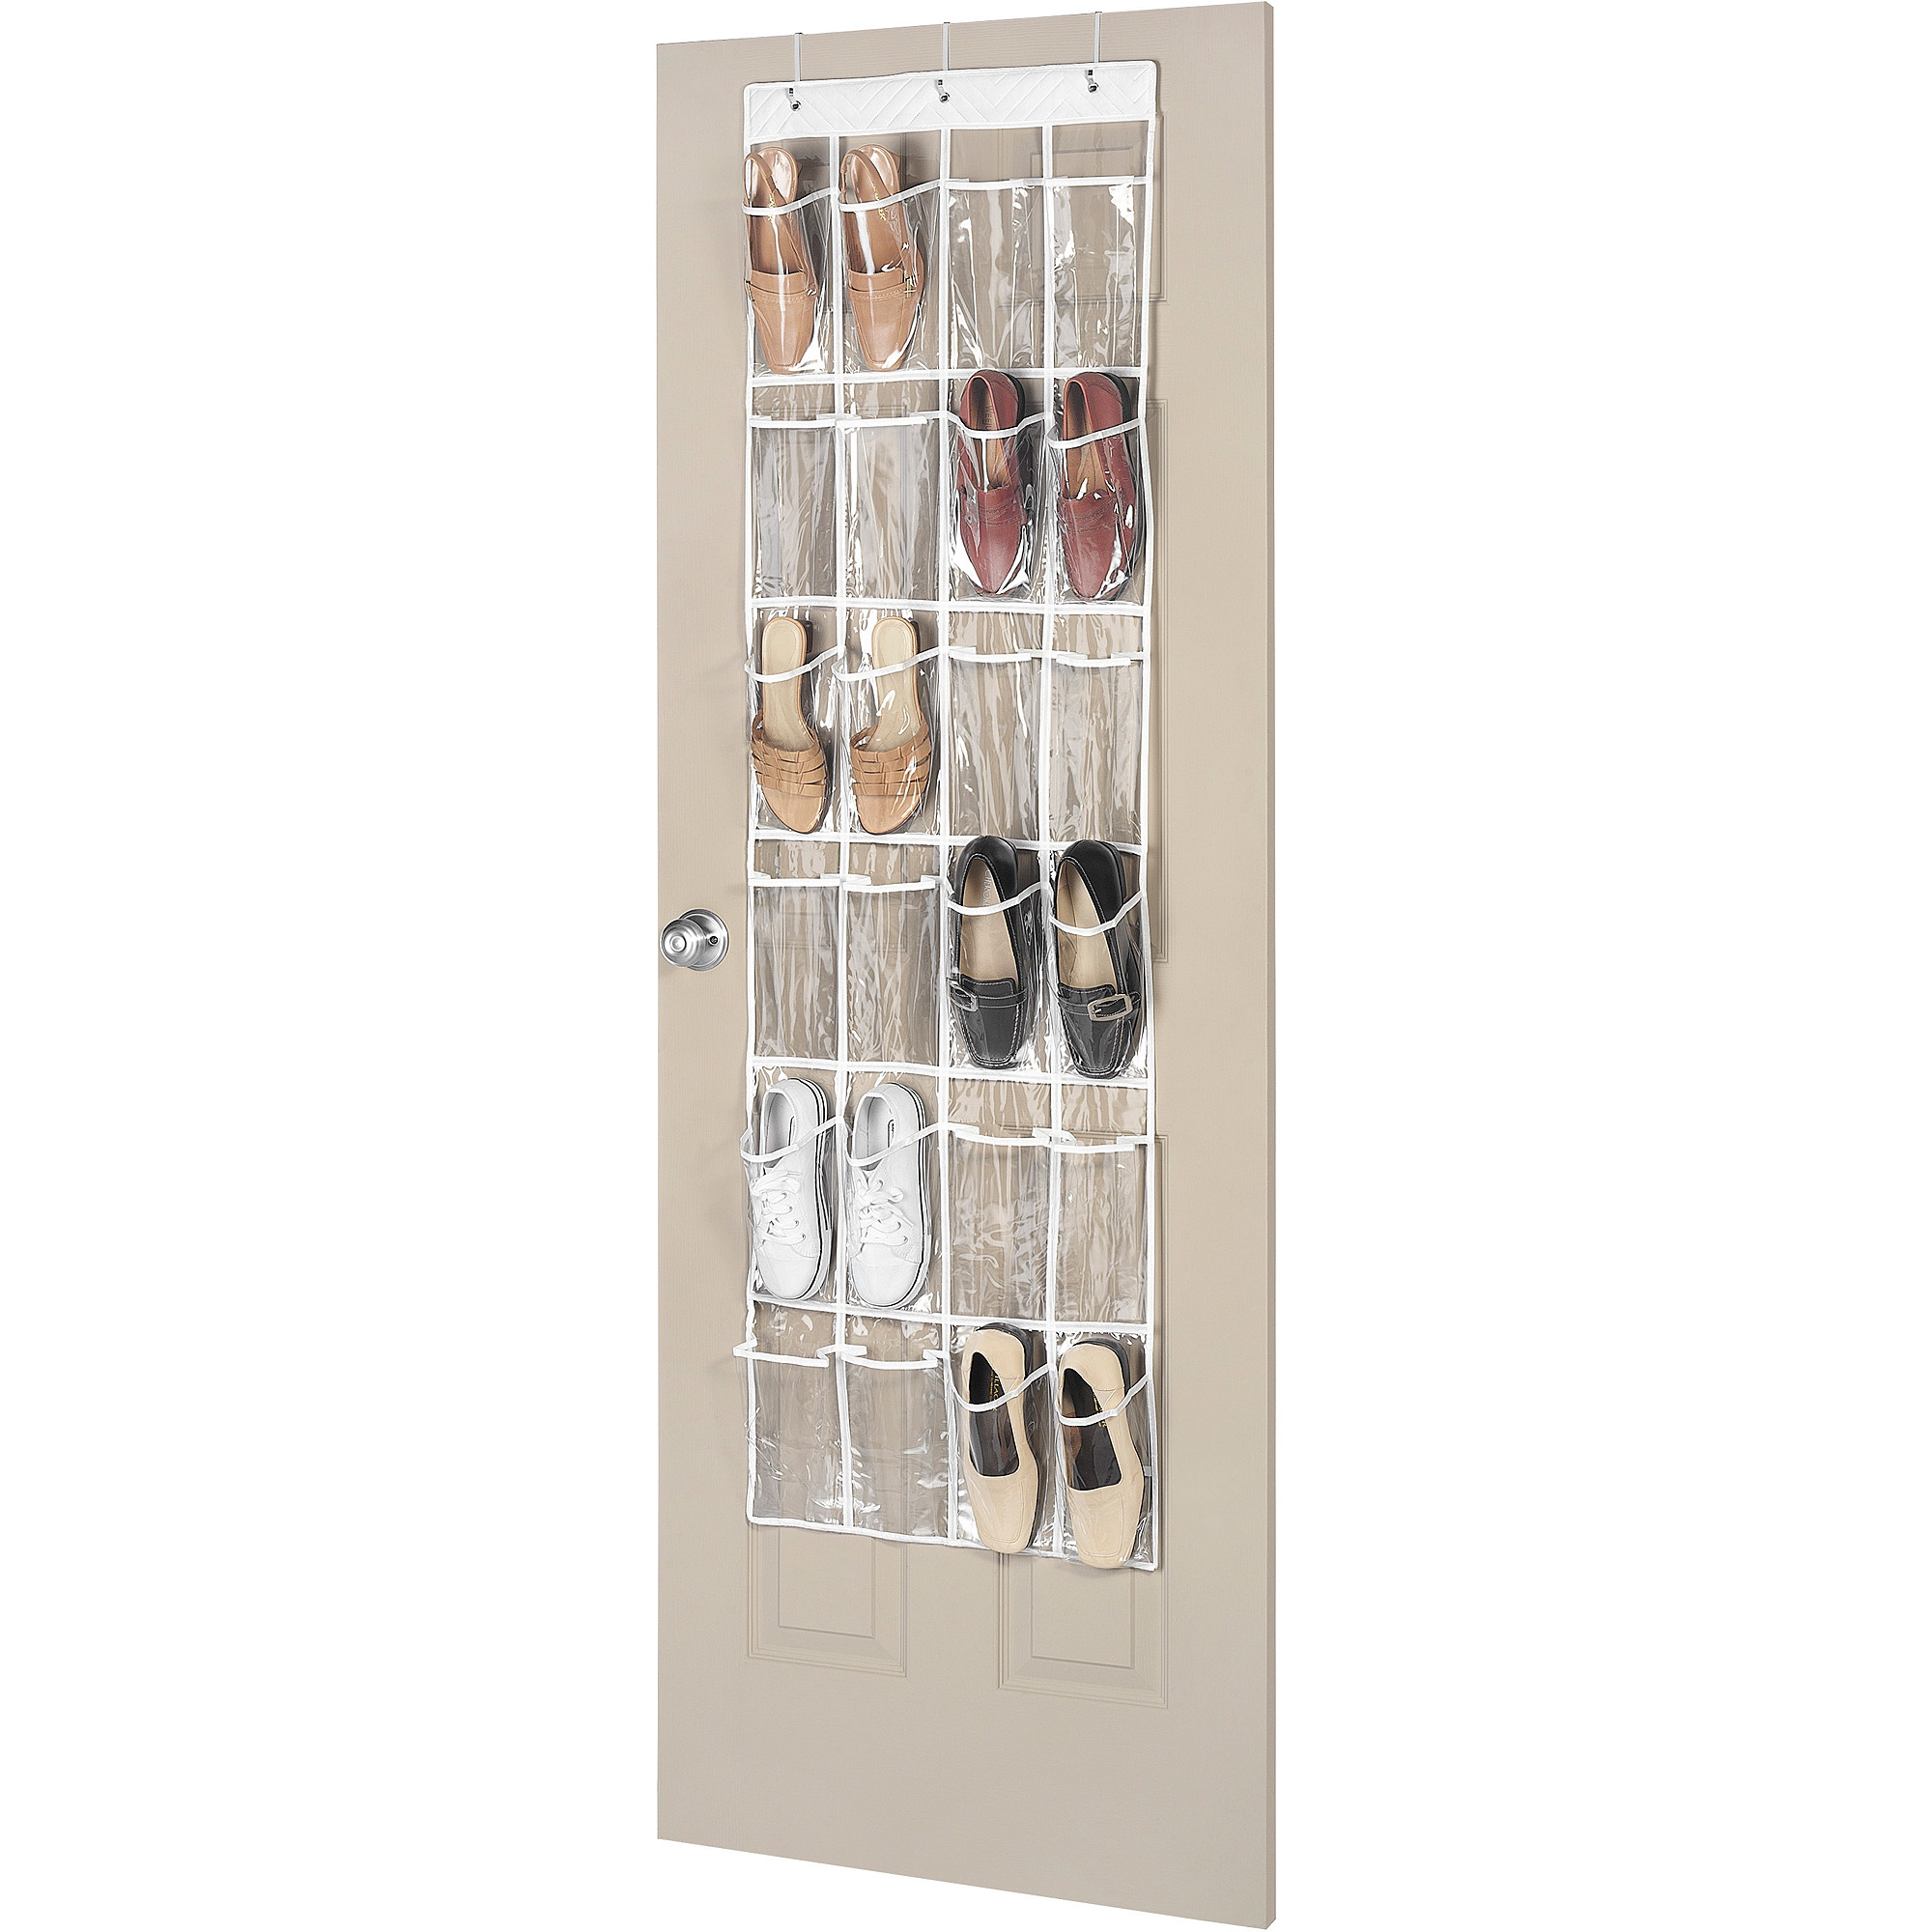 Whitmor 24 Pocket Over the Door Shoe Organizer - Clear - Walmart.com